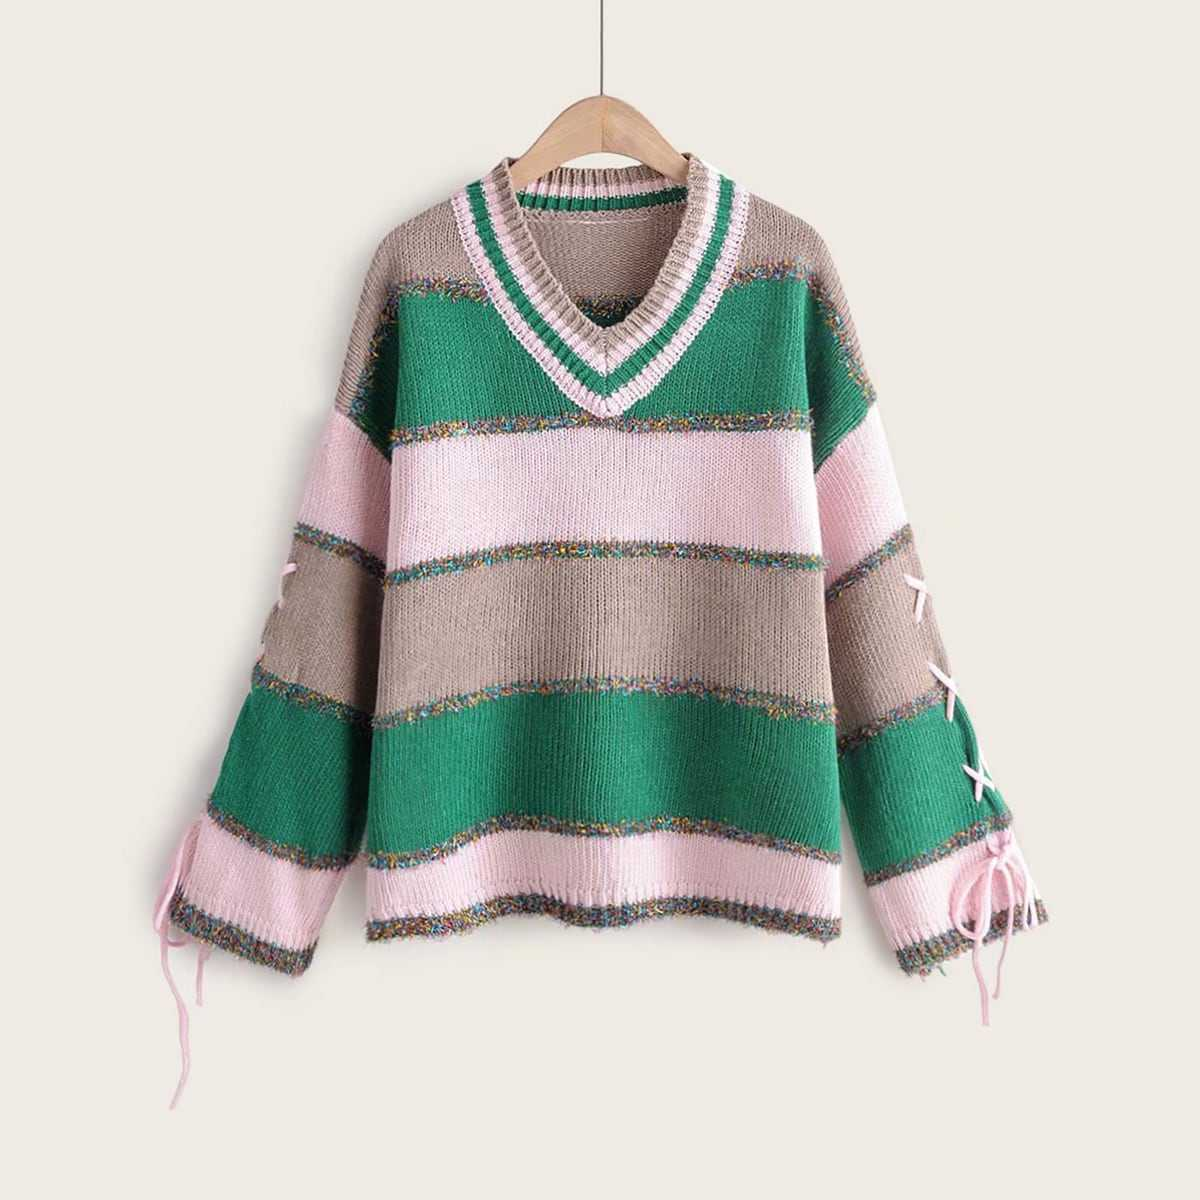 Colorblock Lace-up Sleeve V Neck Sweater in Multicolor by ROMWE on GOOFASH